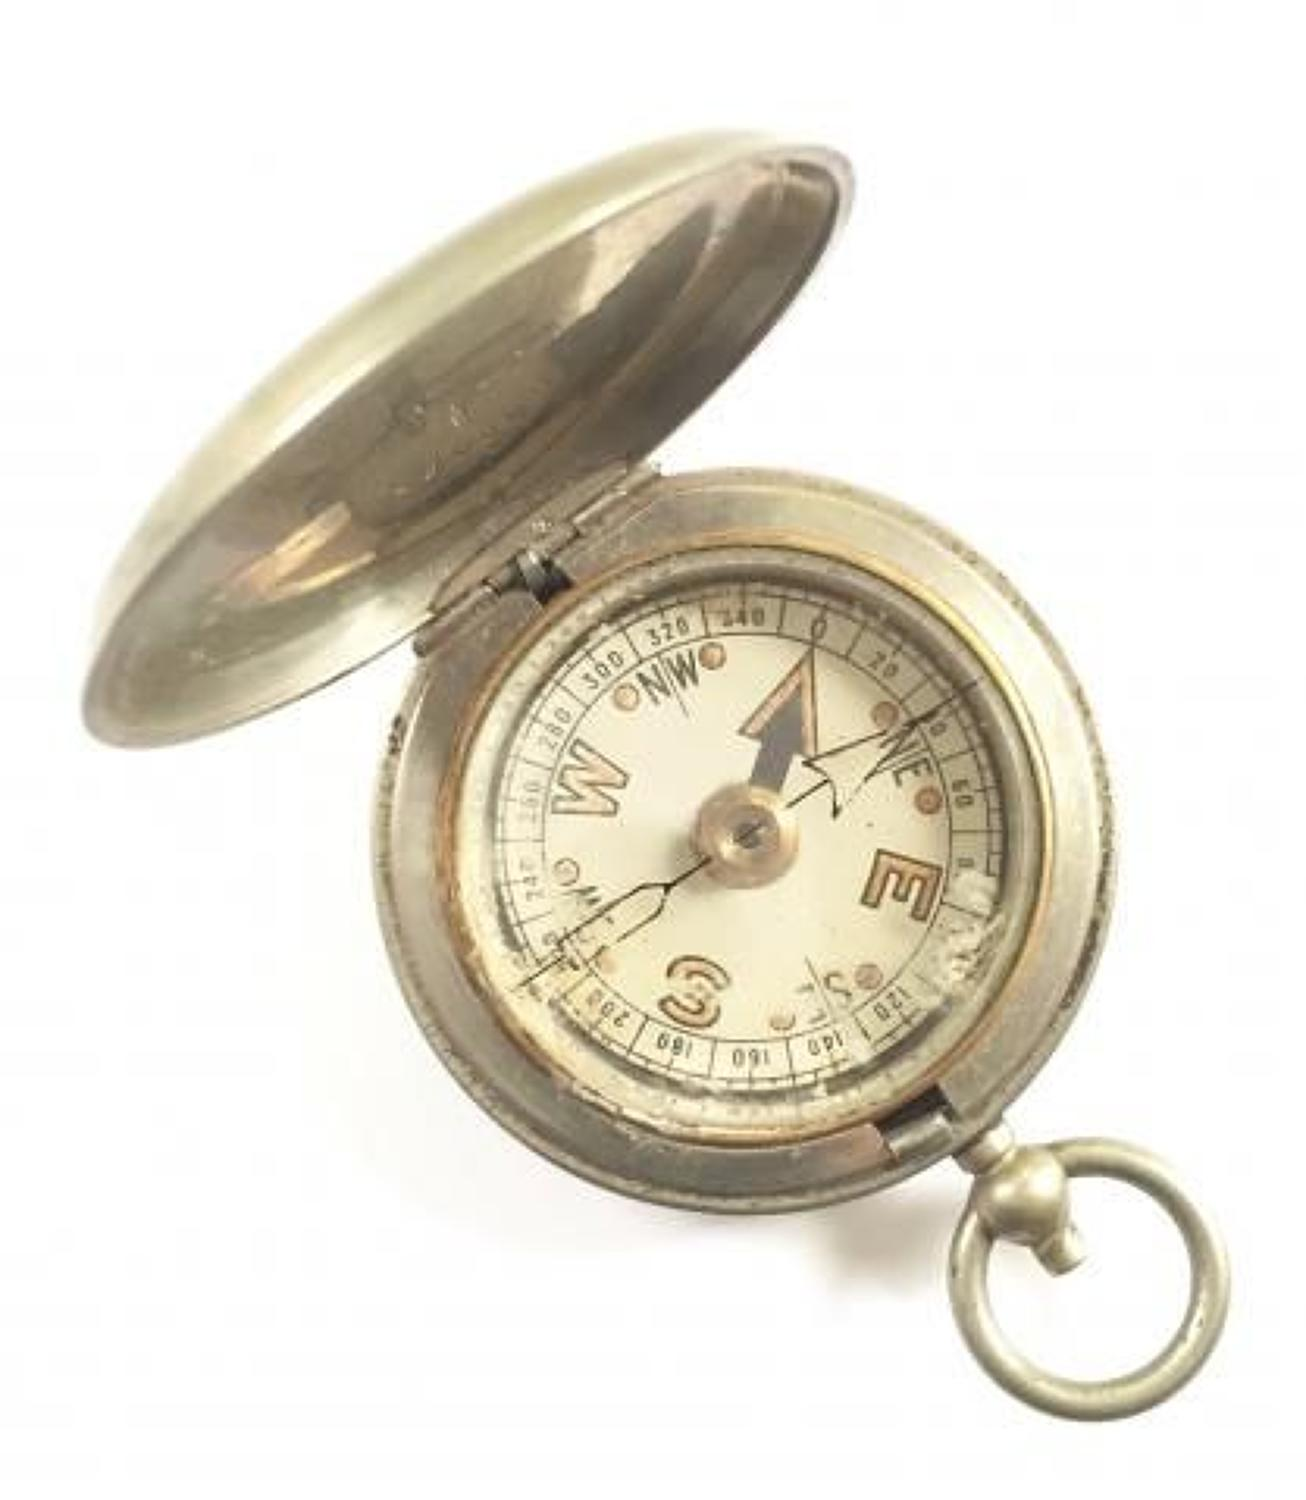 WW1 1917 Issue Pocket Compass.